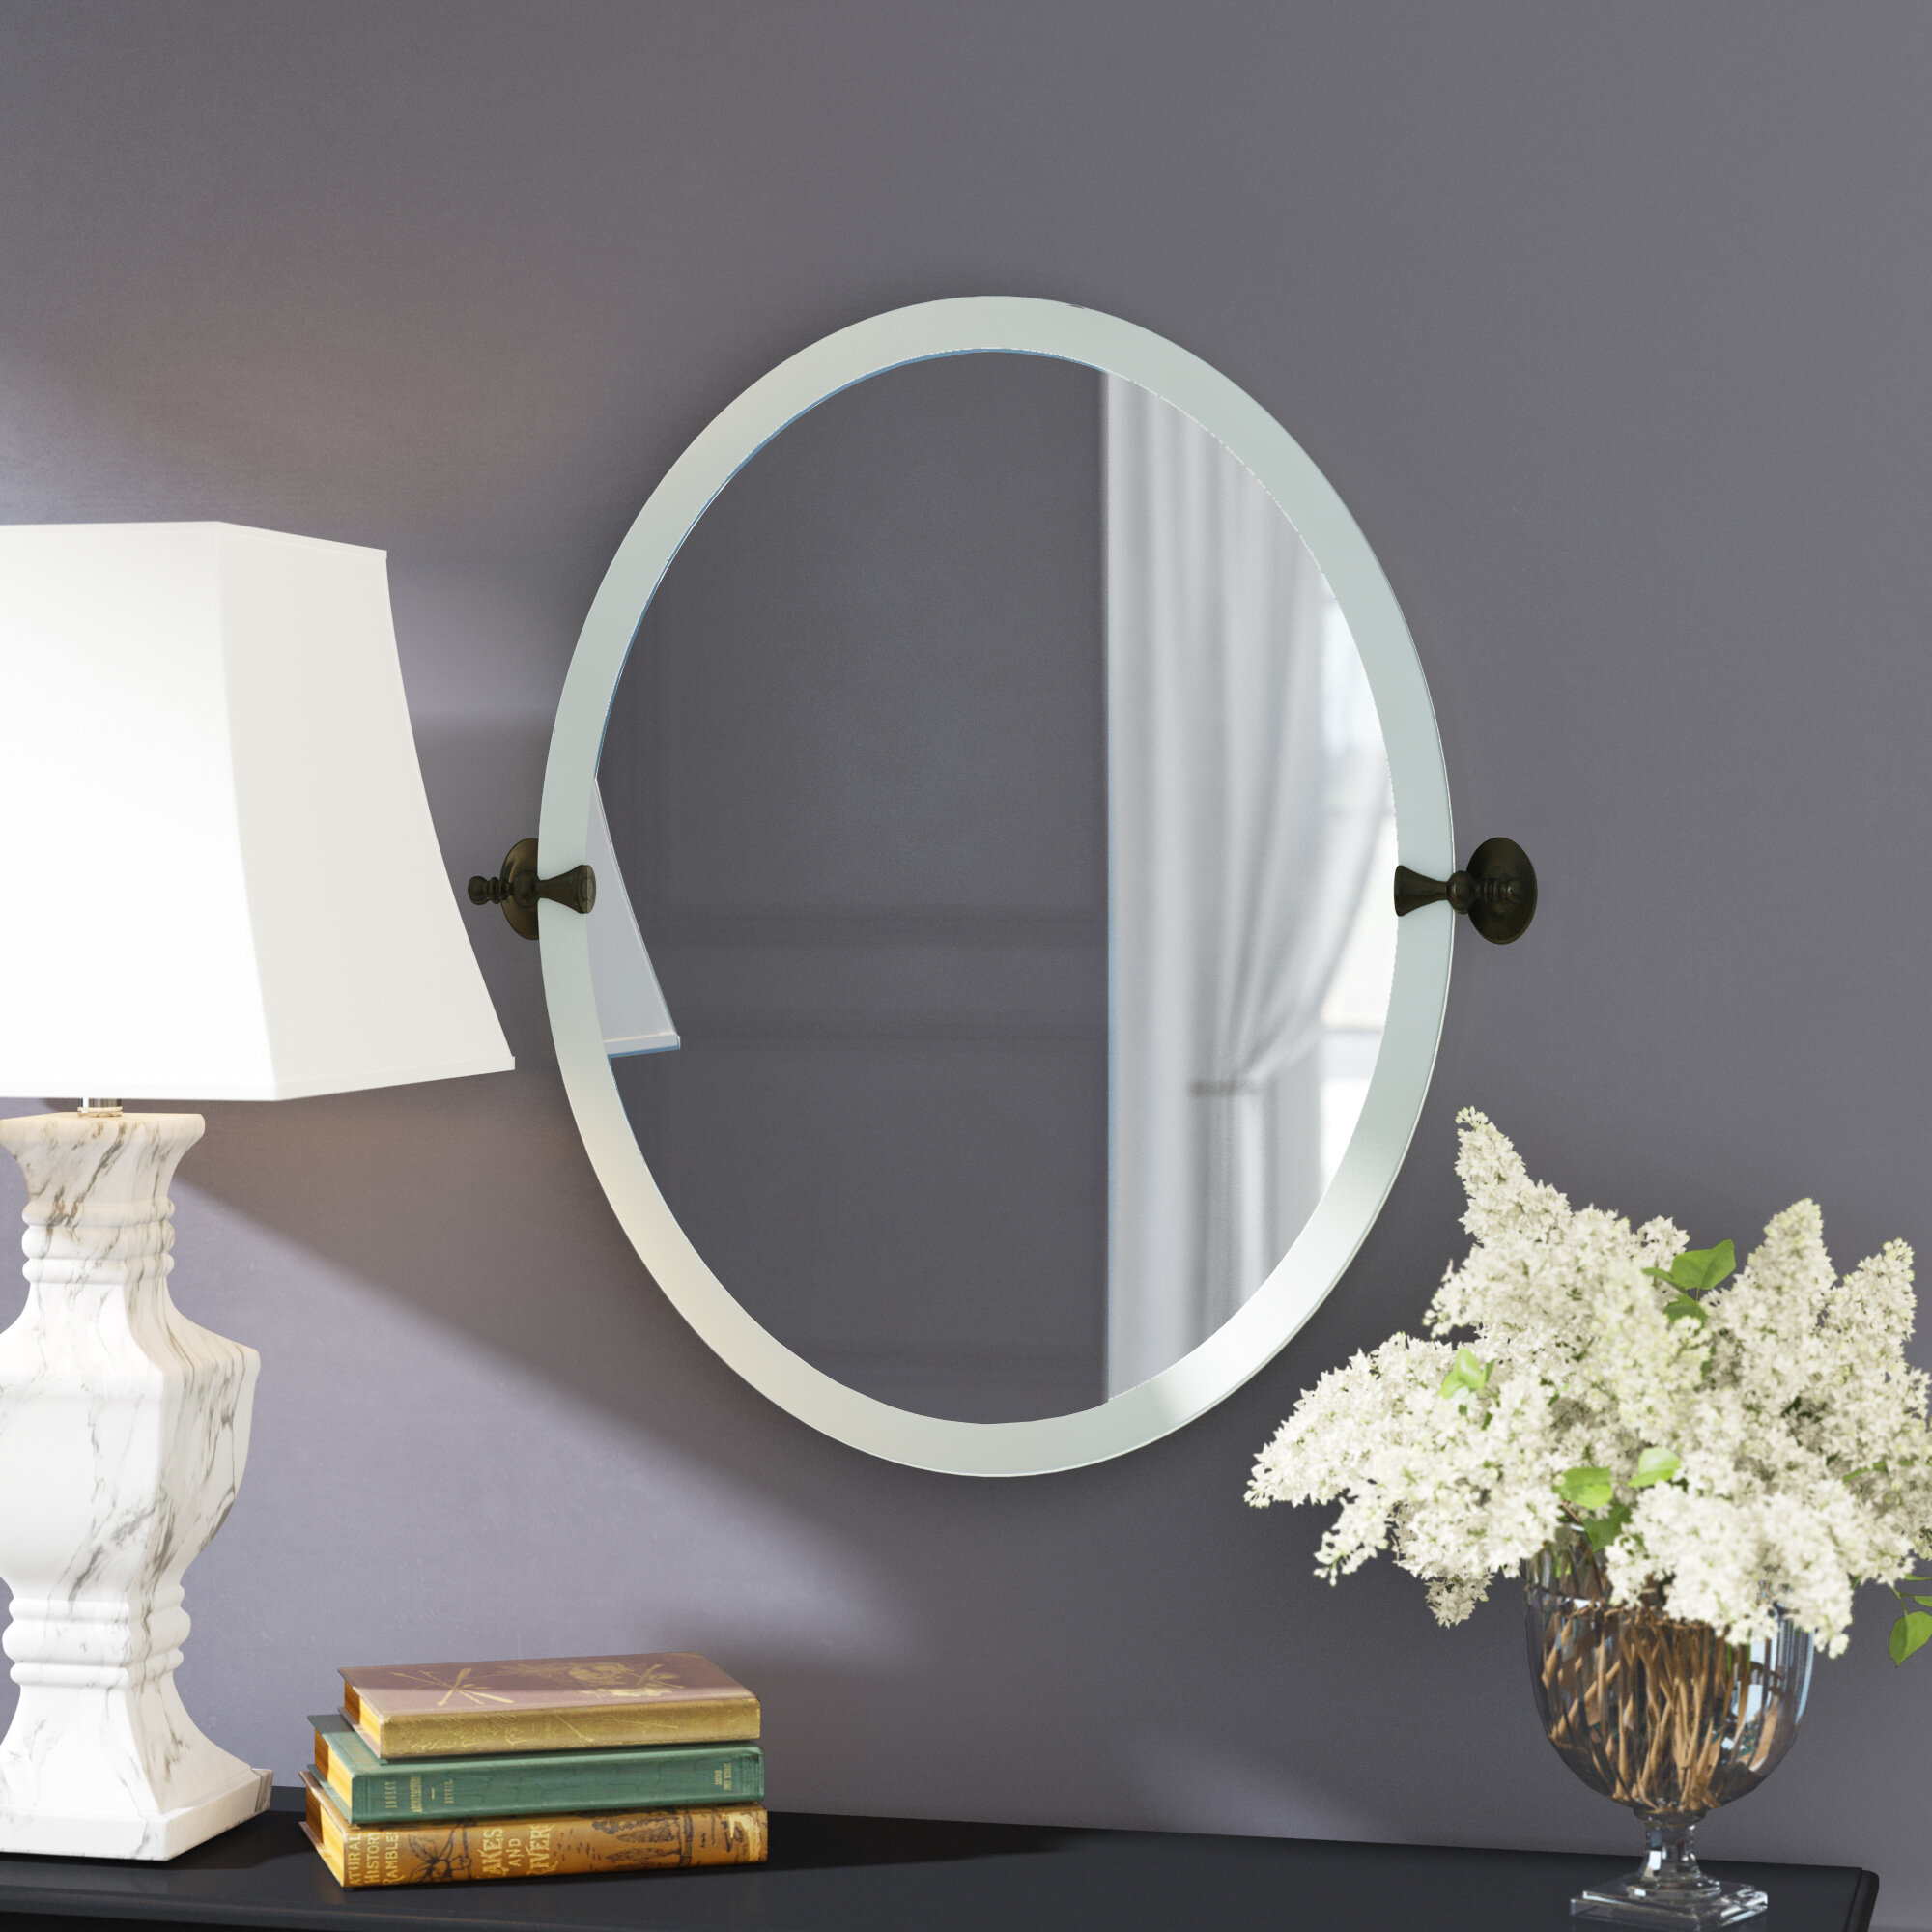 Shabby Elegance Mirror | Wayfair With Regard To Epinal Shabby Elegance Wall Mirrors (View 24 of 30)